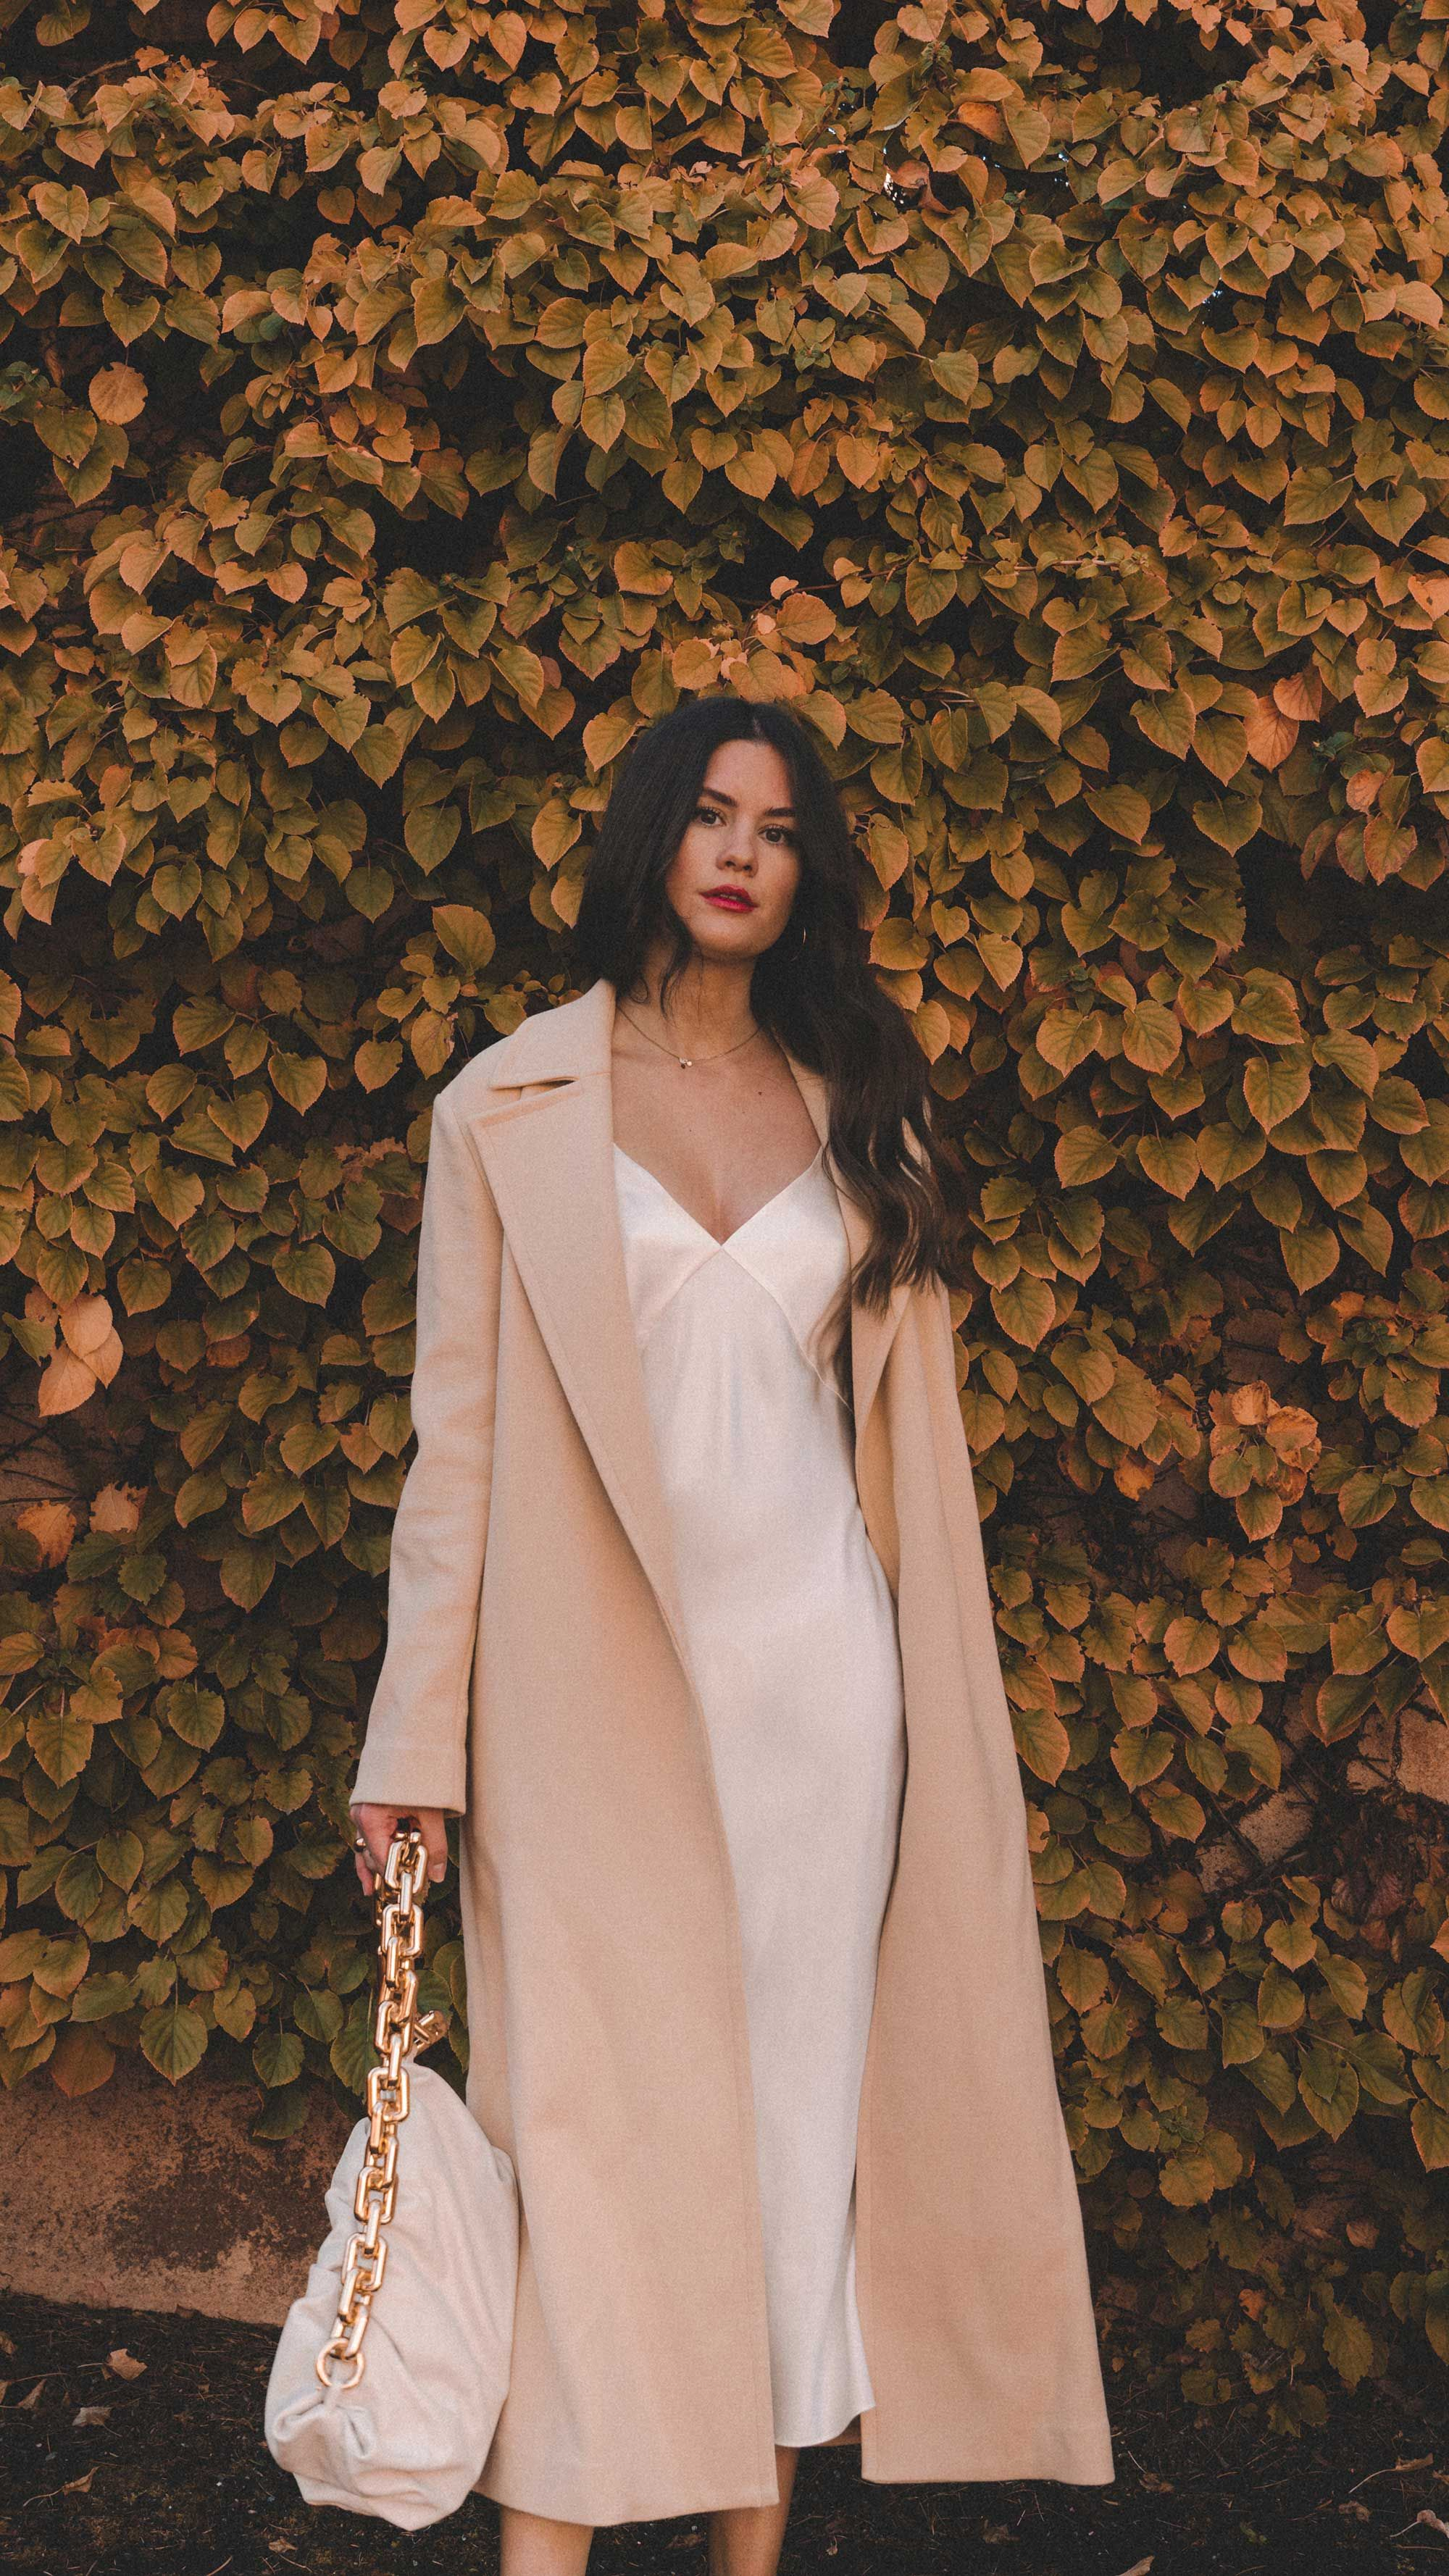 Chic Fall Outfit Idea Trench Slip Dress Sarah Christine Chic Fall Outfits Fashion Slip Dress Outfit [ 3556 x 2000 Pixel ]